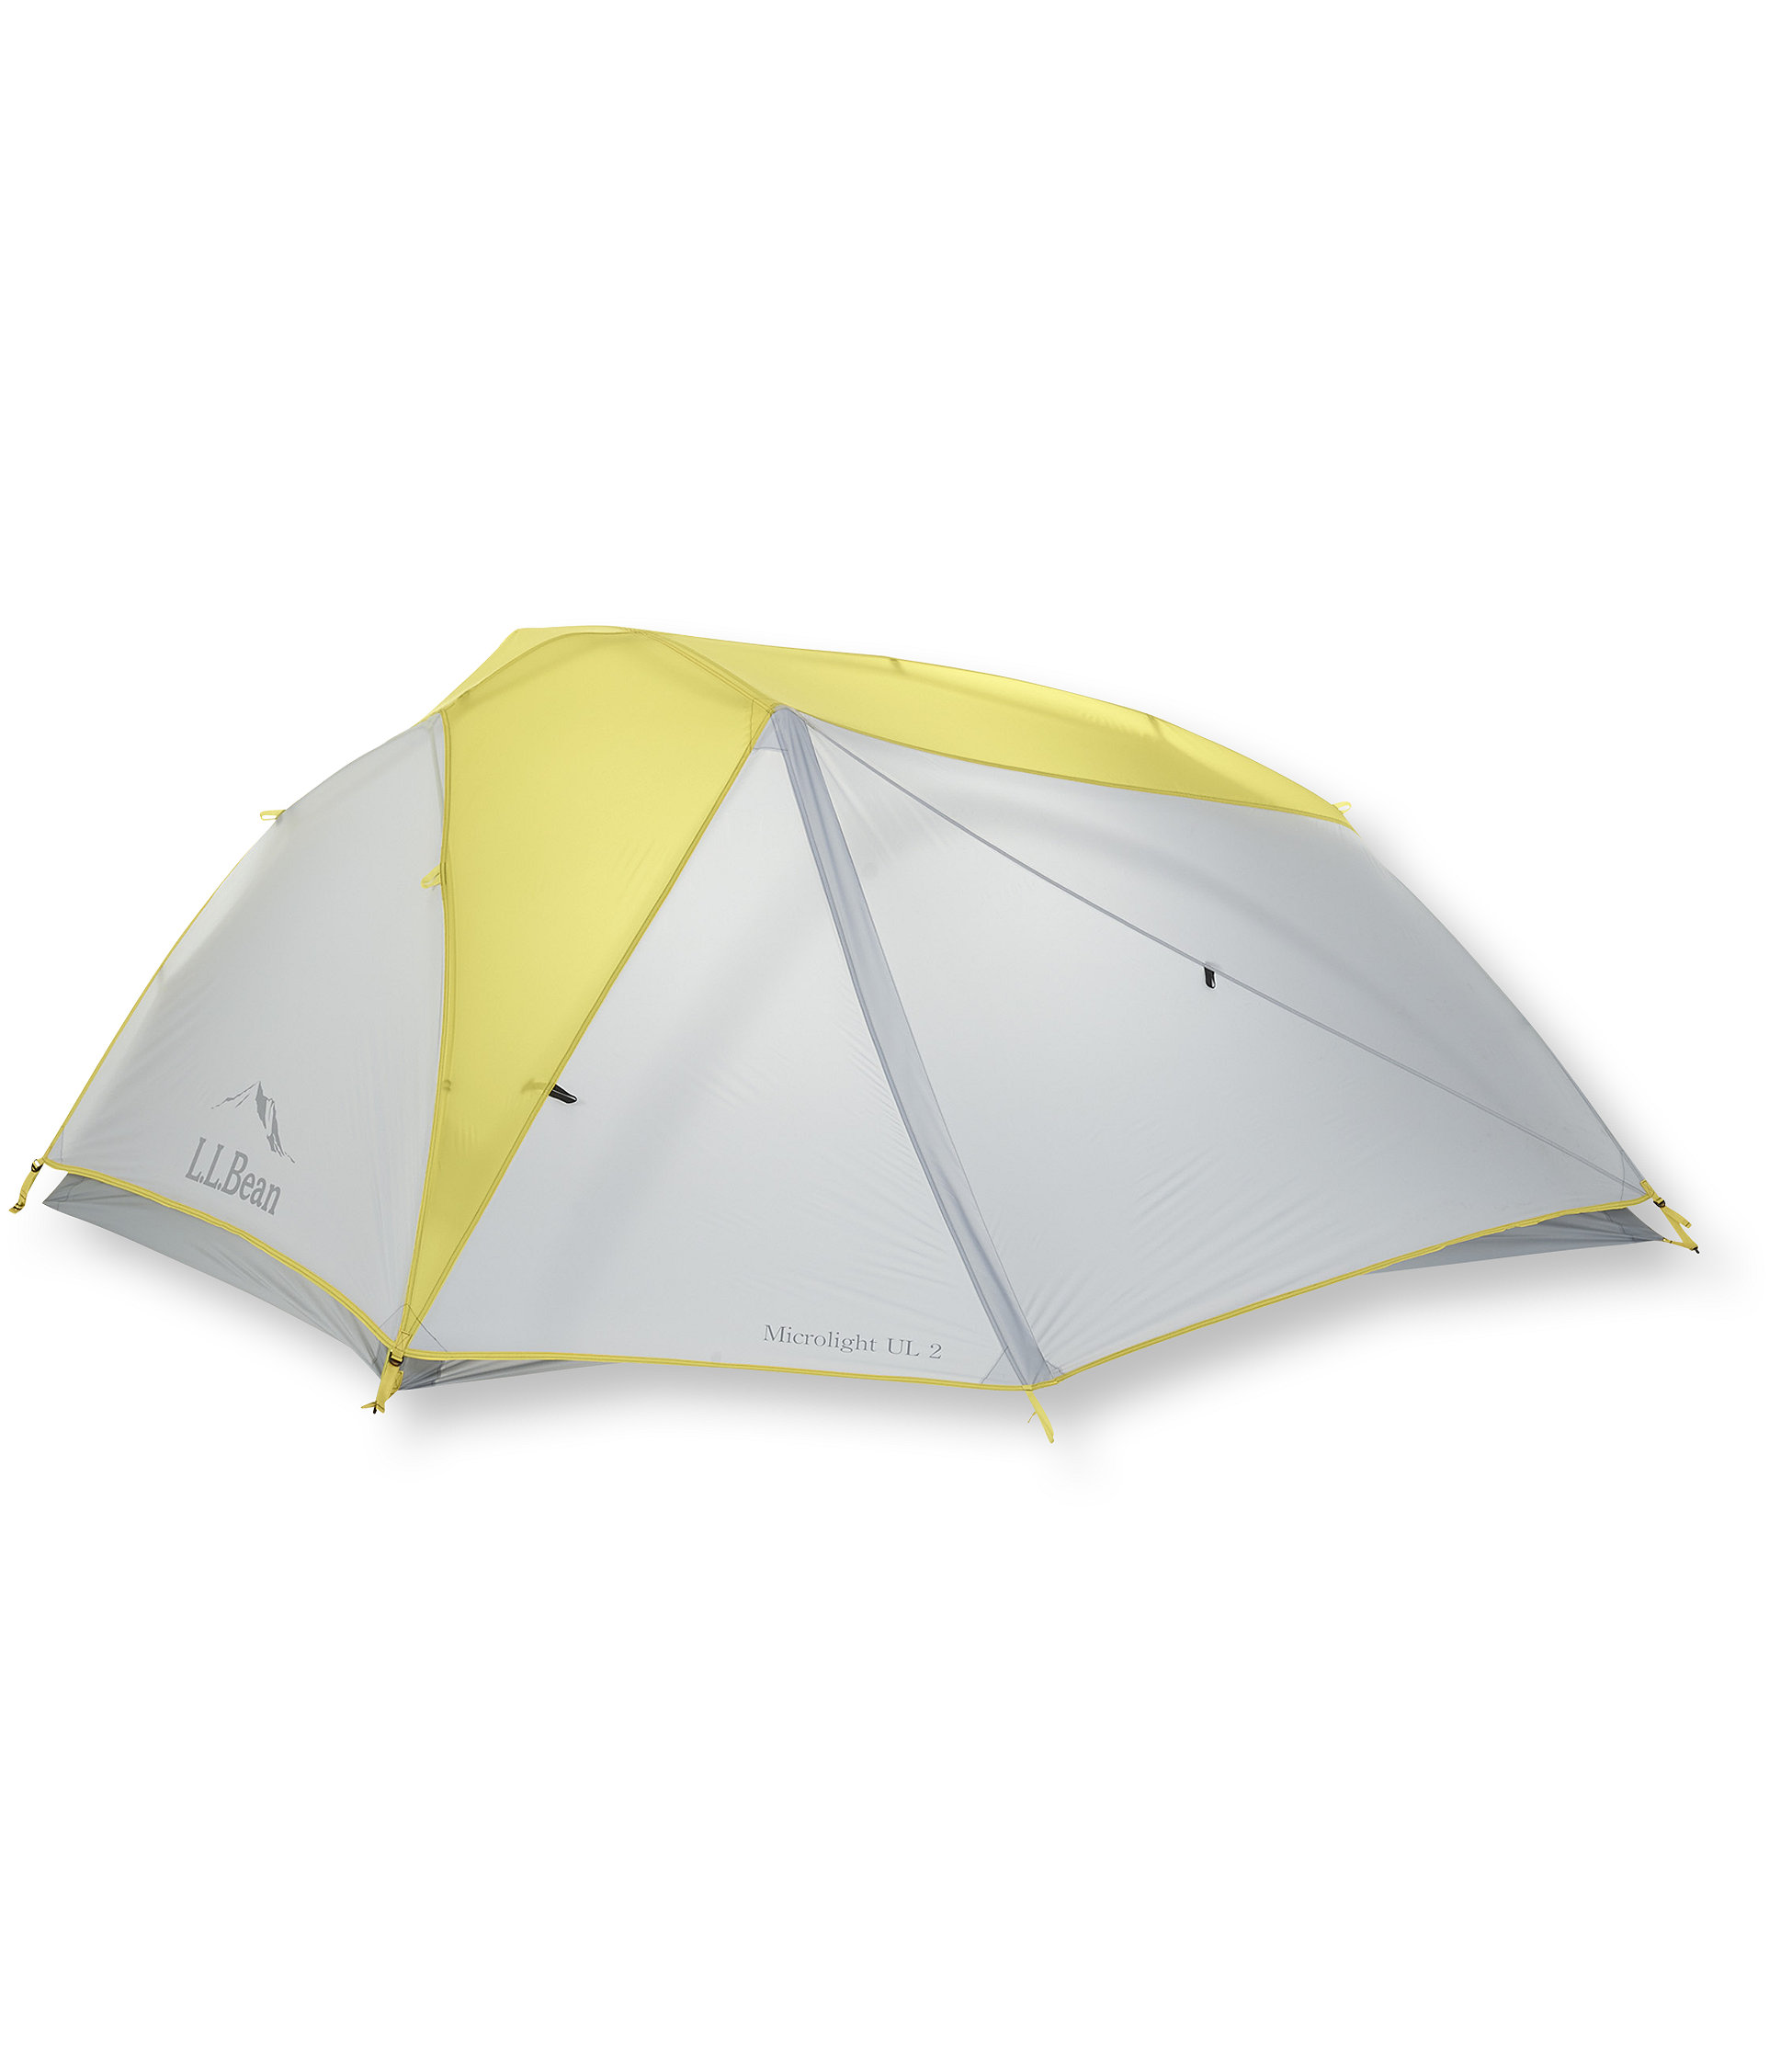 photo: L.L.Bean Microlight UL 2P three-season tent